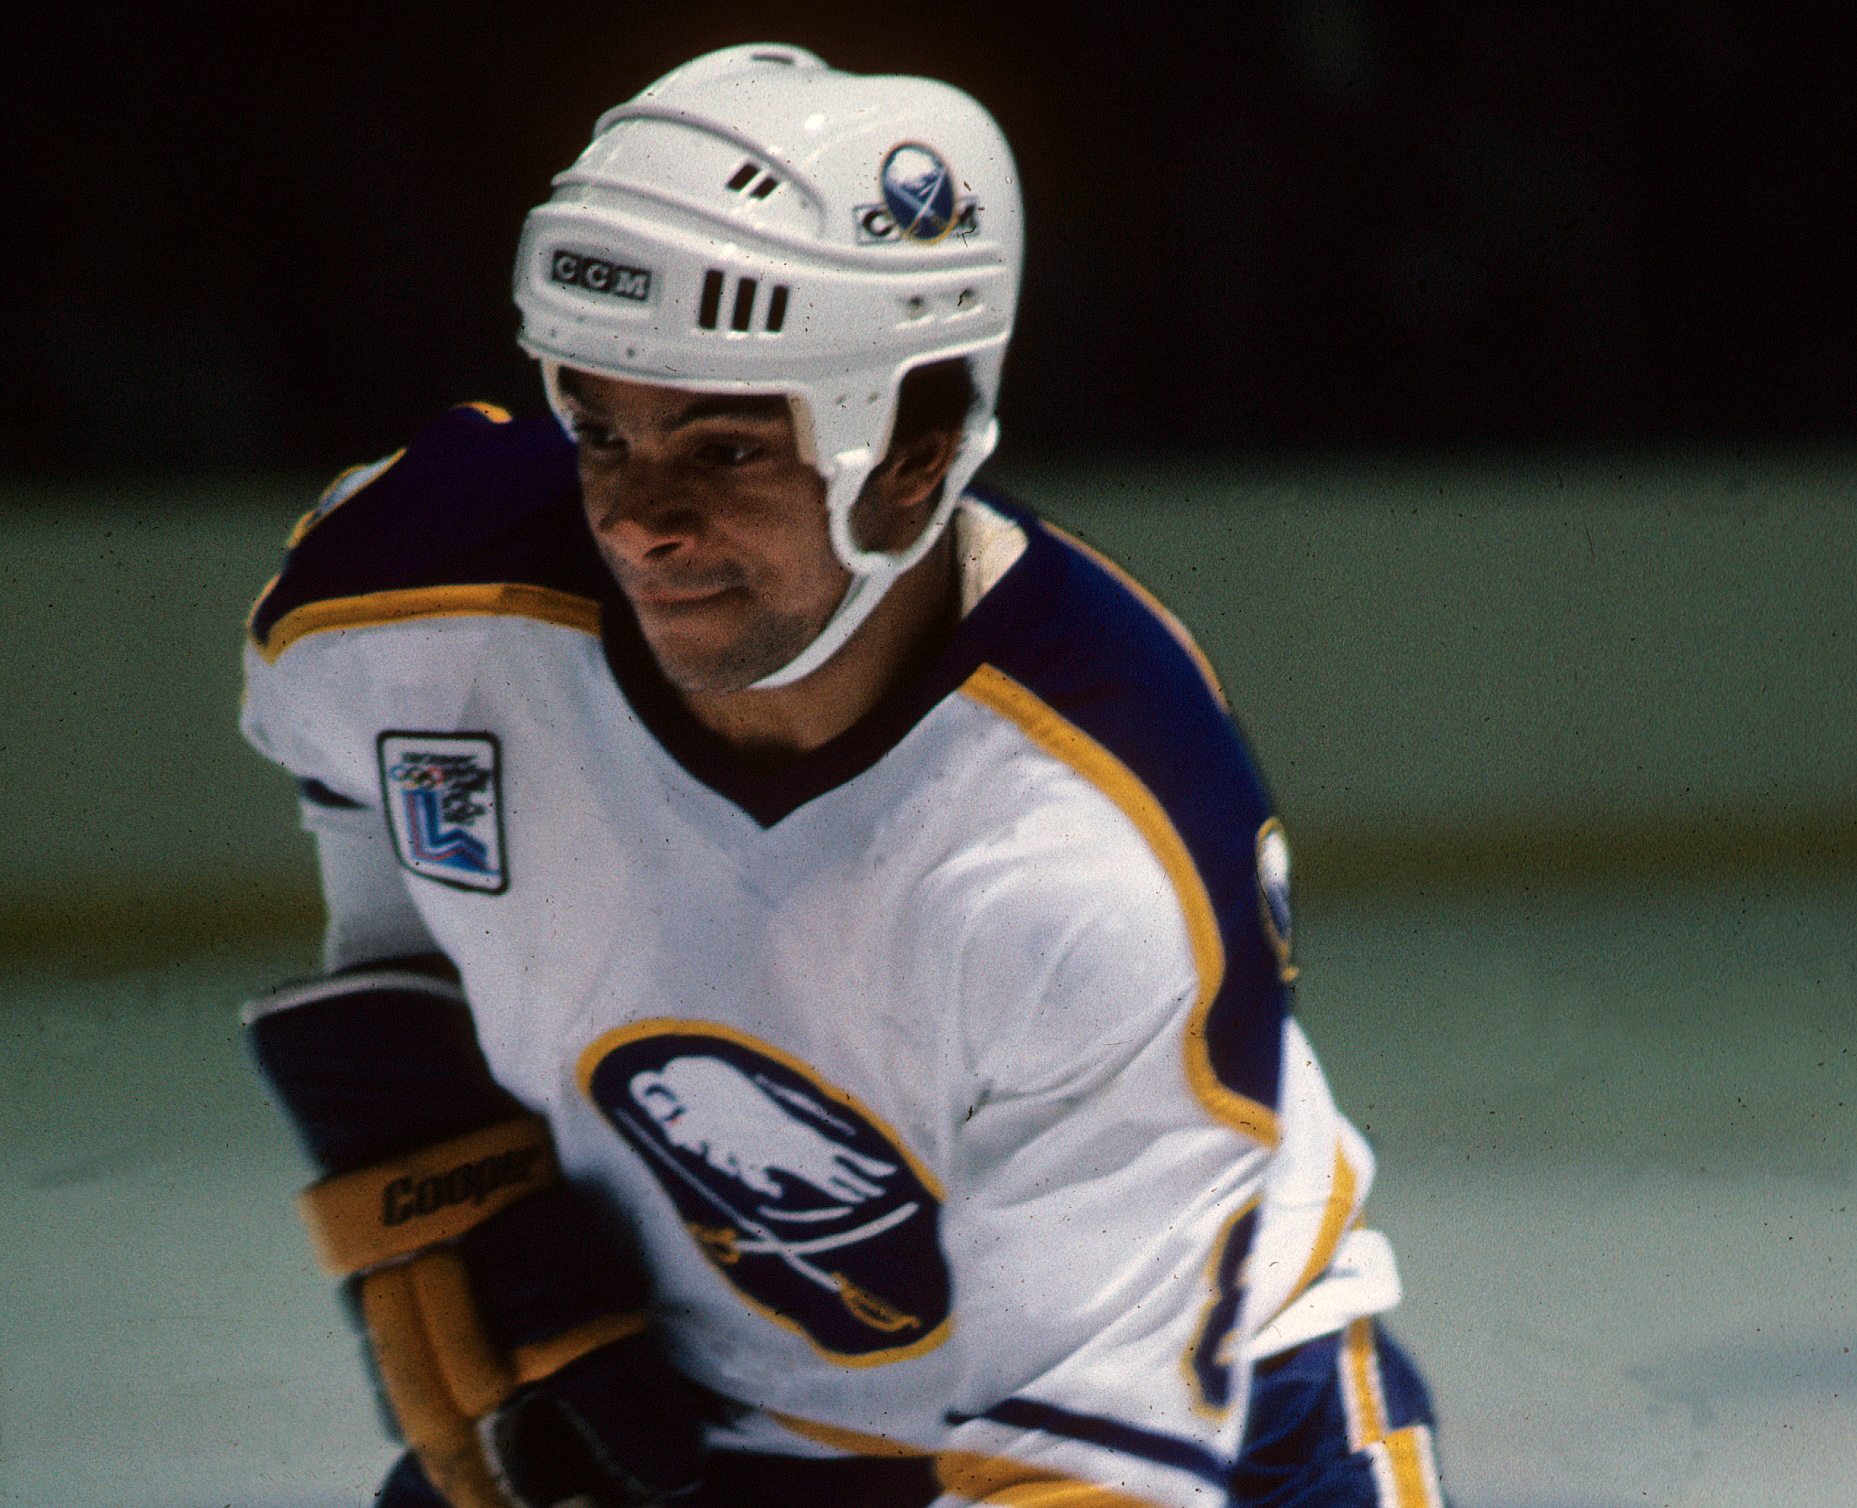 """In my journey I was very lucky to go to Buffalo. If I went to some other place, like Atlanta, my experience would have been very different,"" said McKegney who was drafted by the Sabres in 1978 and played his first four NHL seasons in Buffalo.  Buffalo News file photo)"